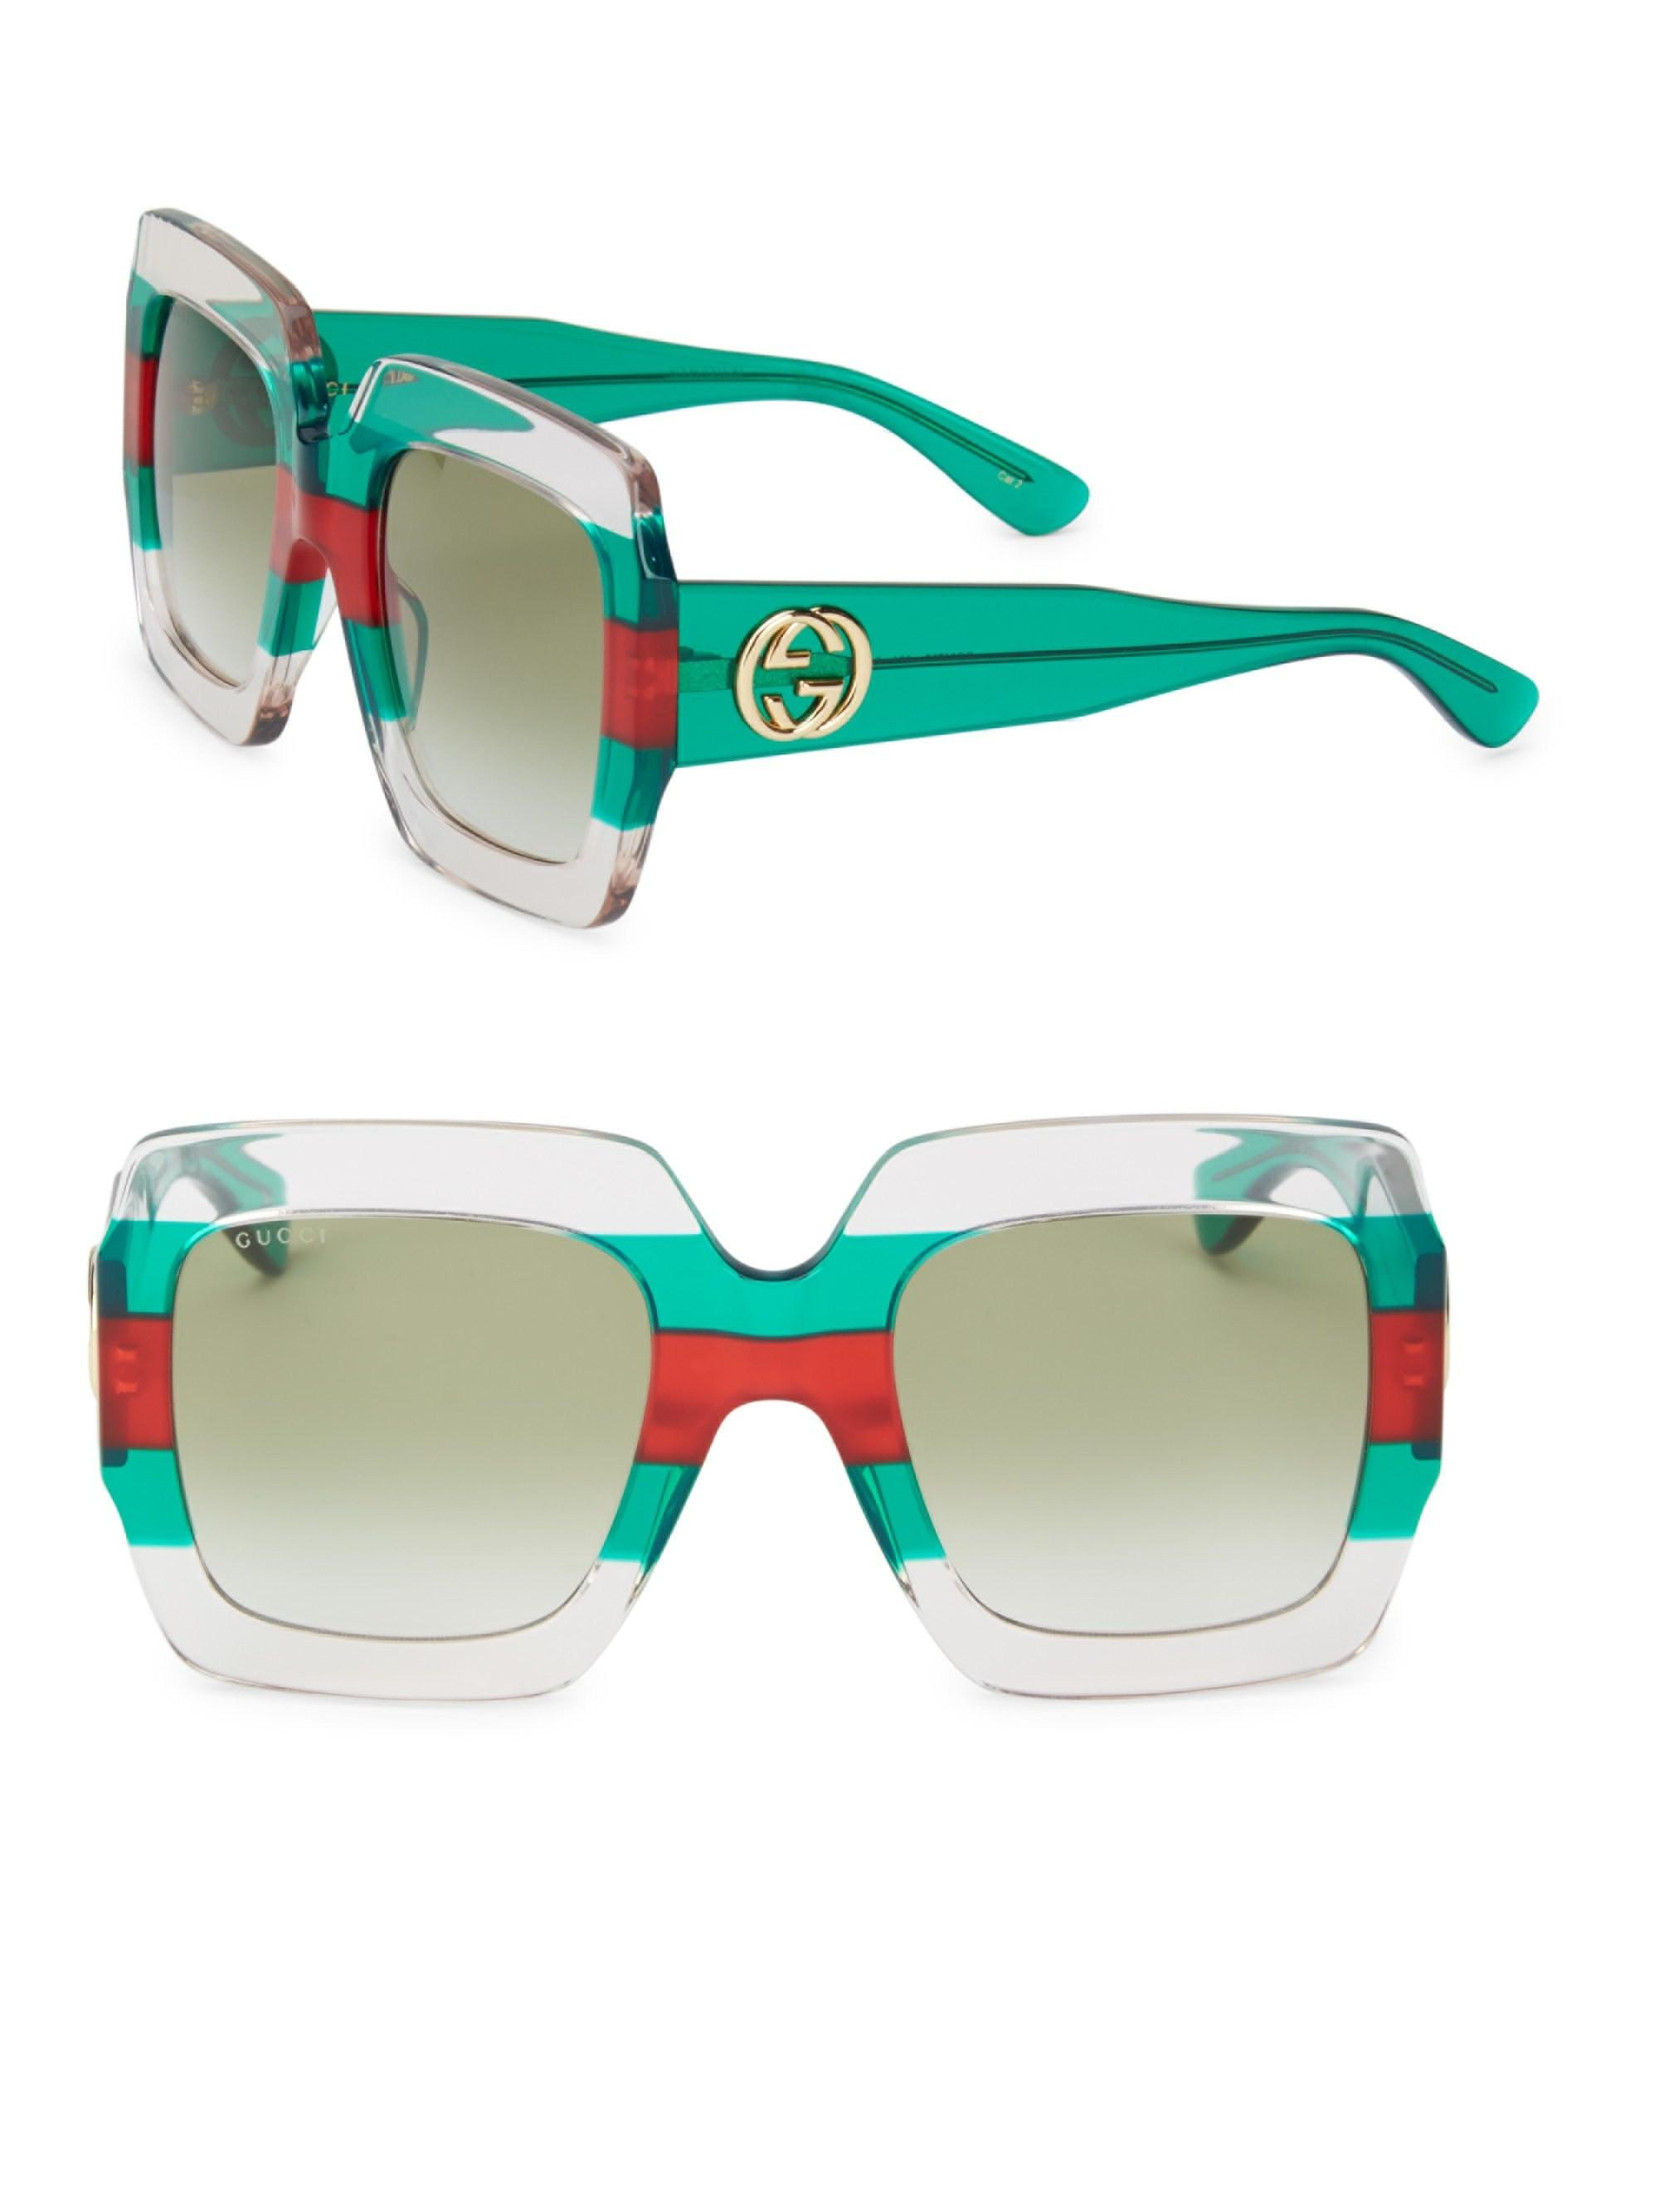 82d1cae04e Gucci - Green Women s Web 54mm Oversized Square Sunglasses - Lyst. View  fullscreen